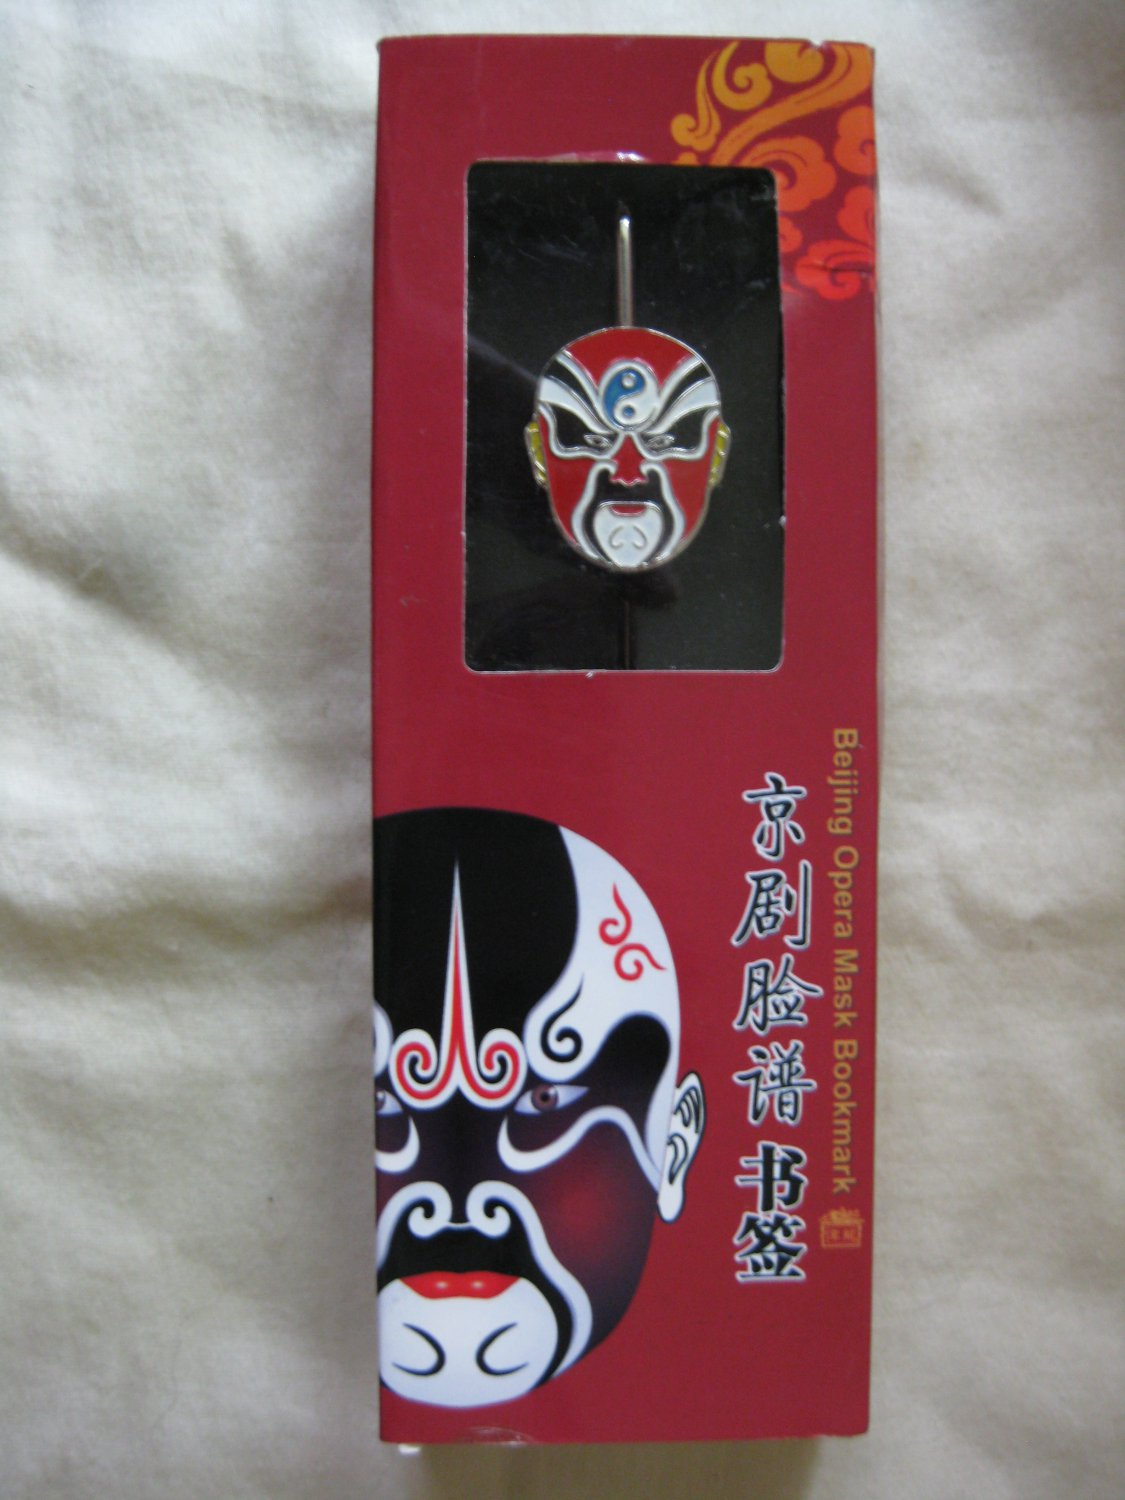 Beijing Opera mask bookmark